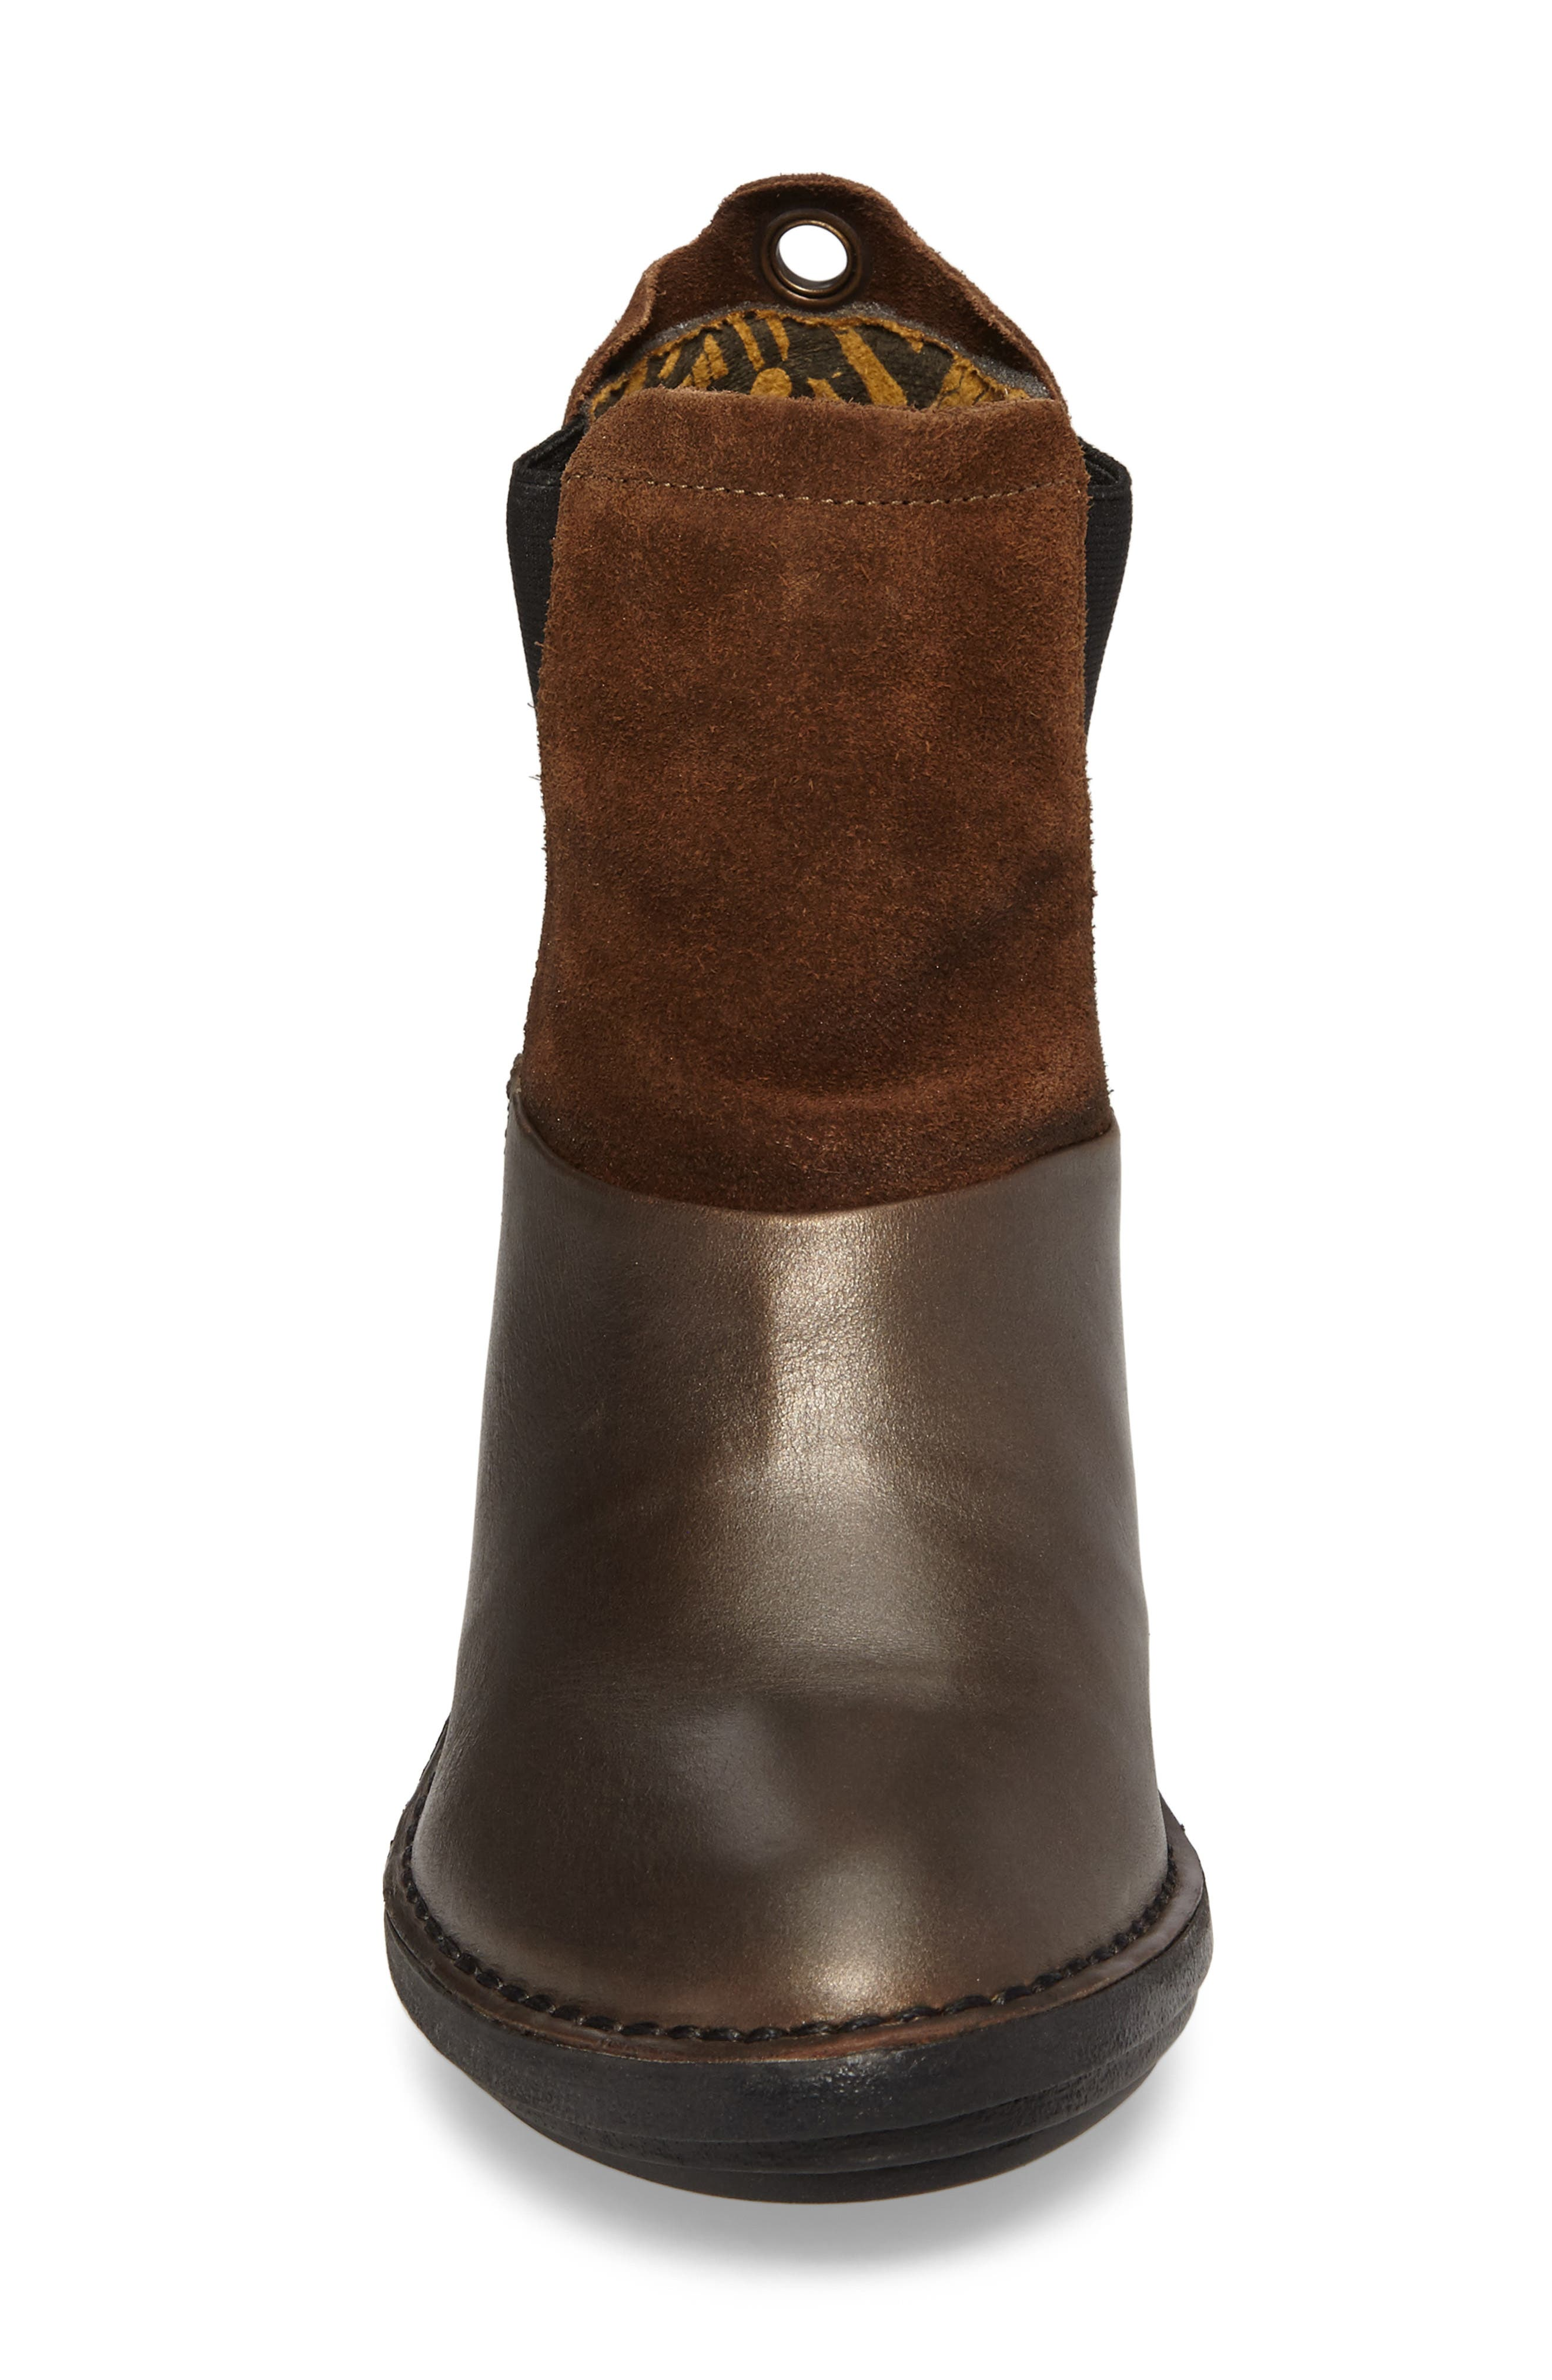 Sula Wedge Bootie,                             Alternate thumbnail 4, color,                             Olive/ Camel Suede